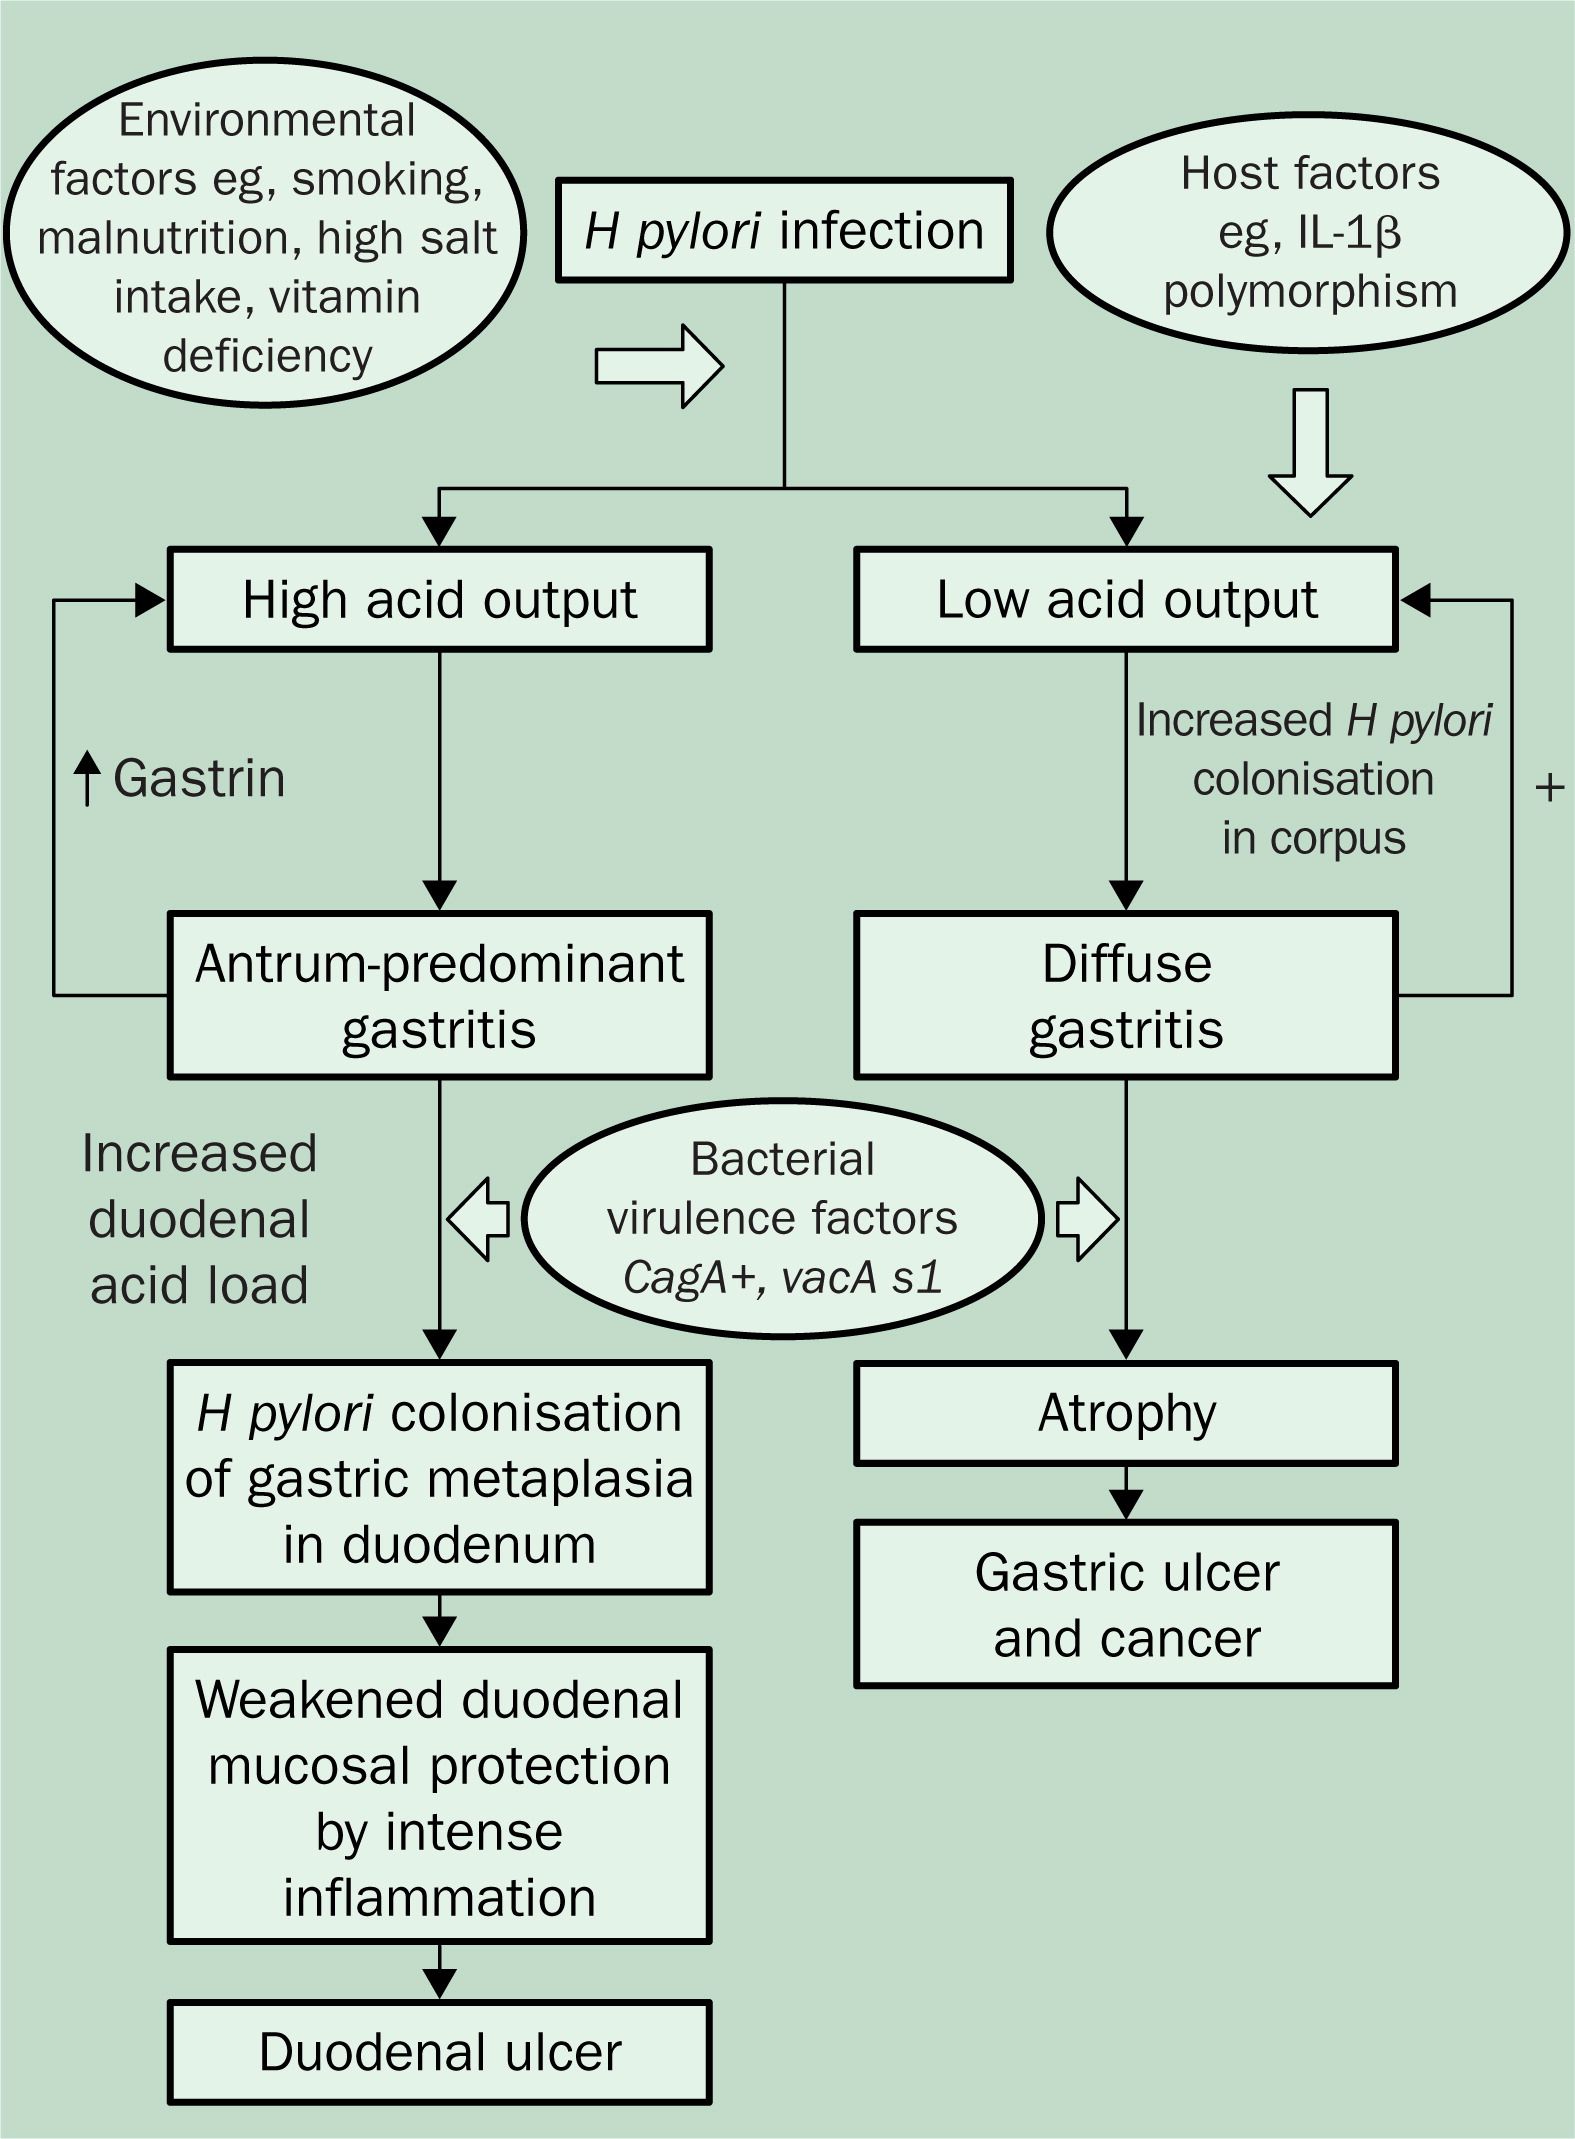 pathophysiology of peptic ulcer disease diagram 2001 saturn sl stereo wiring the lancet